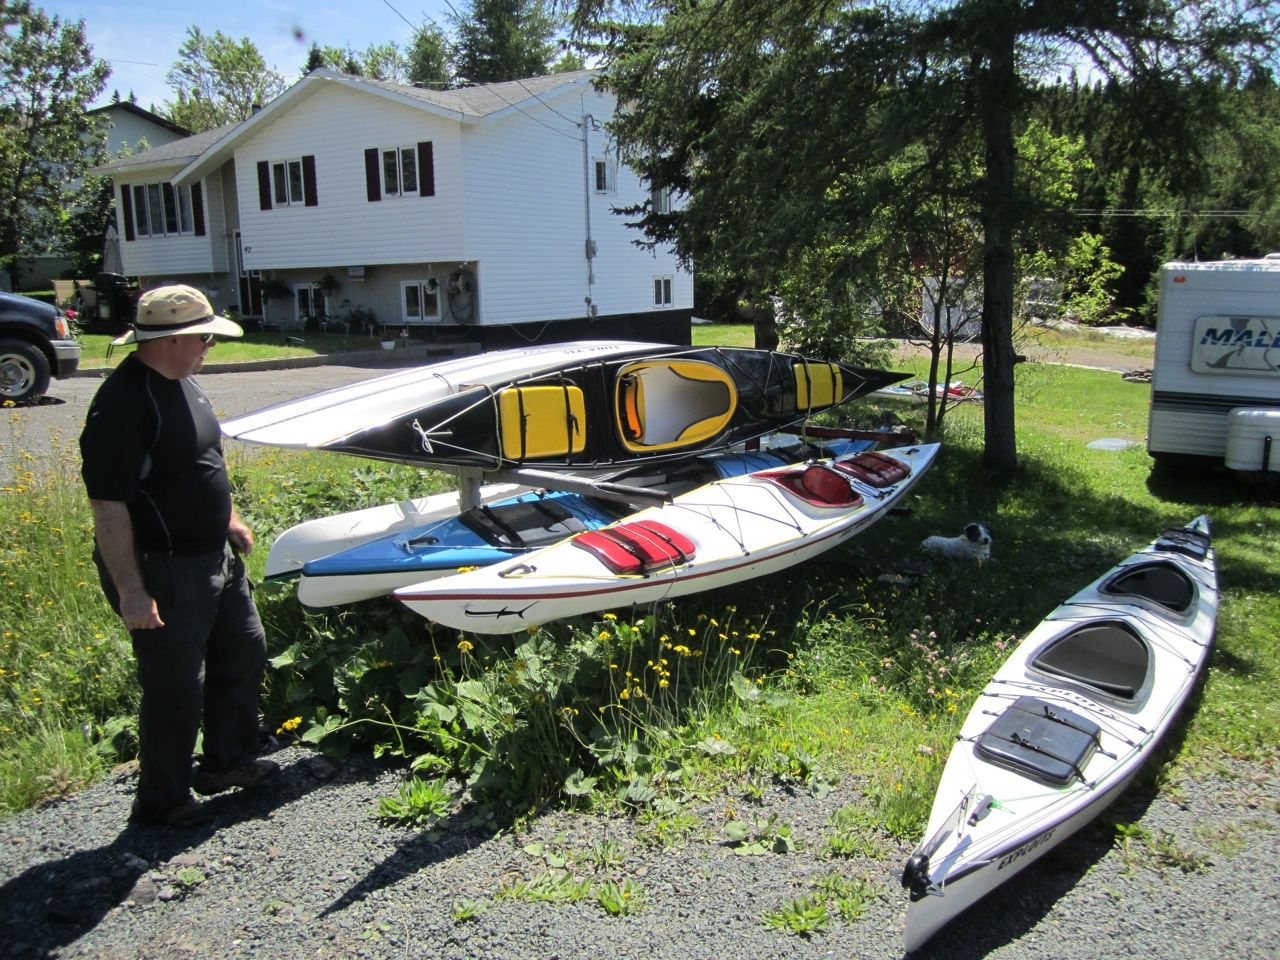 David Checking Out The Kayaks In Lindy's Front Yard.